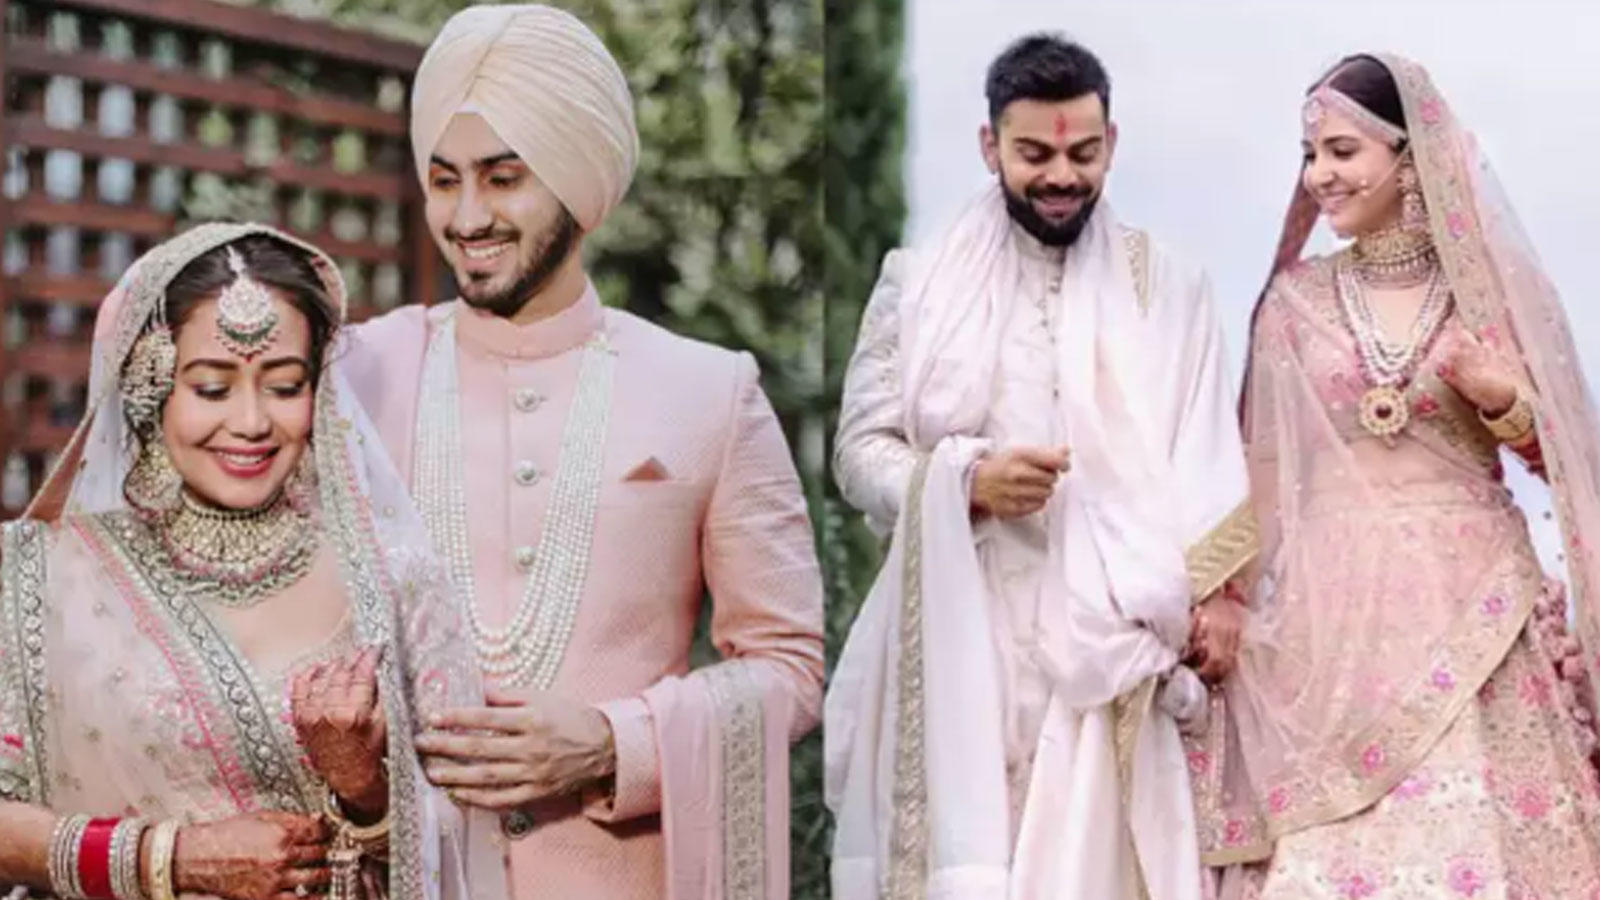 neha-kakkar-gives-befitting-reply-to-social-media-users-who-trolled-her-for-wedding-outfits